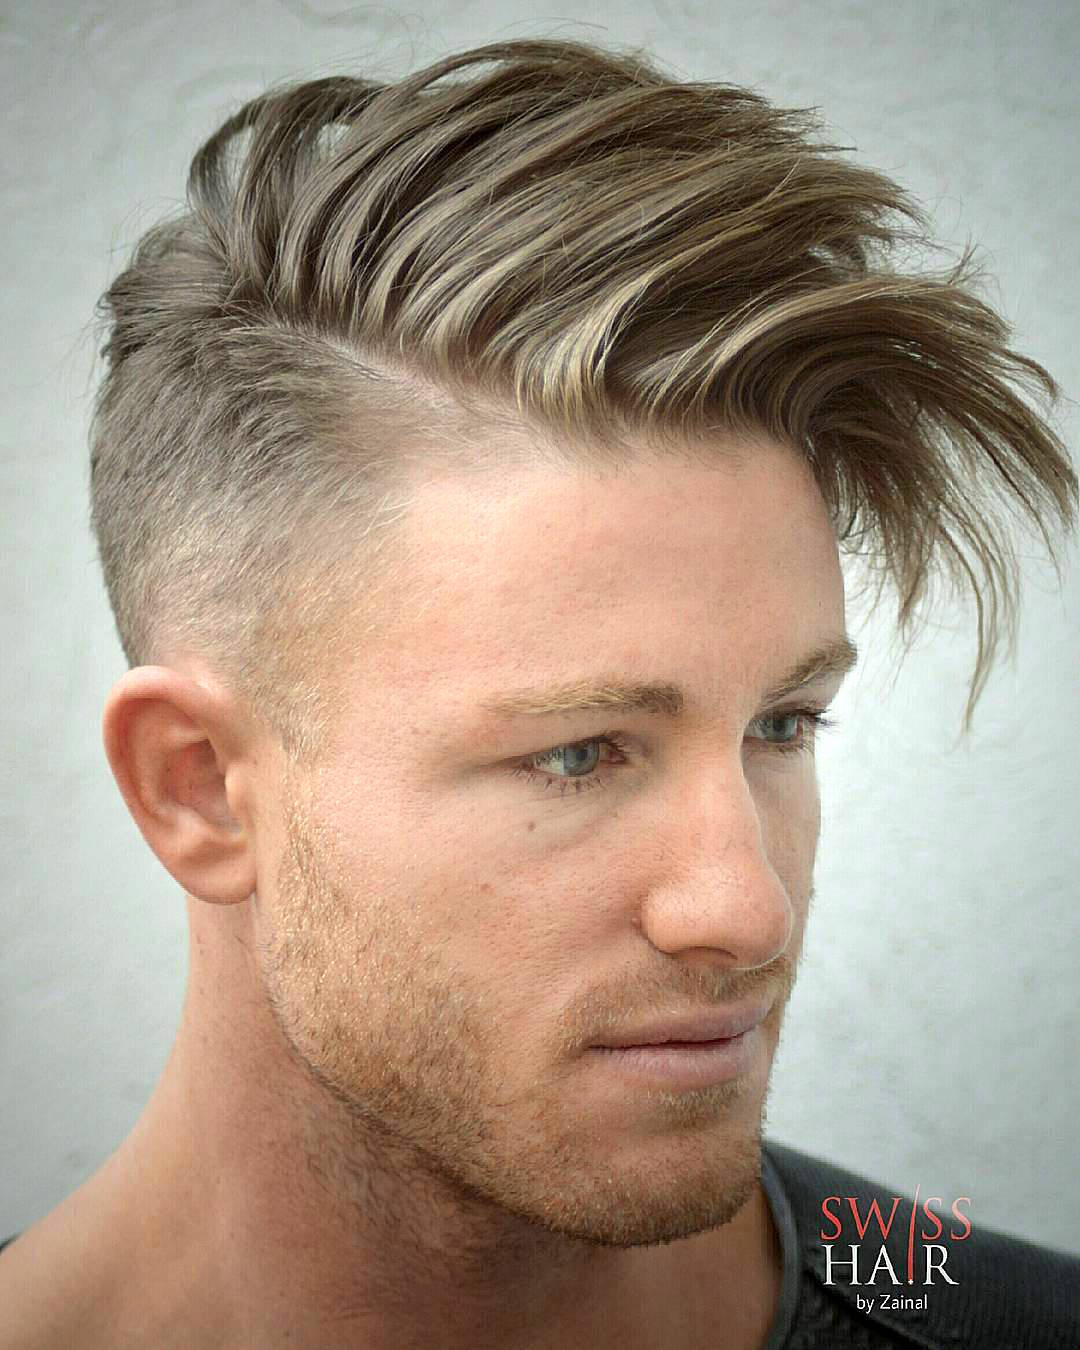 New Model Hair Style : 20 Long Hairstyles For Men - Mens Hairstyle Trends